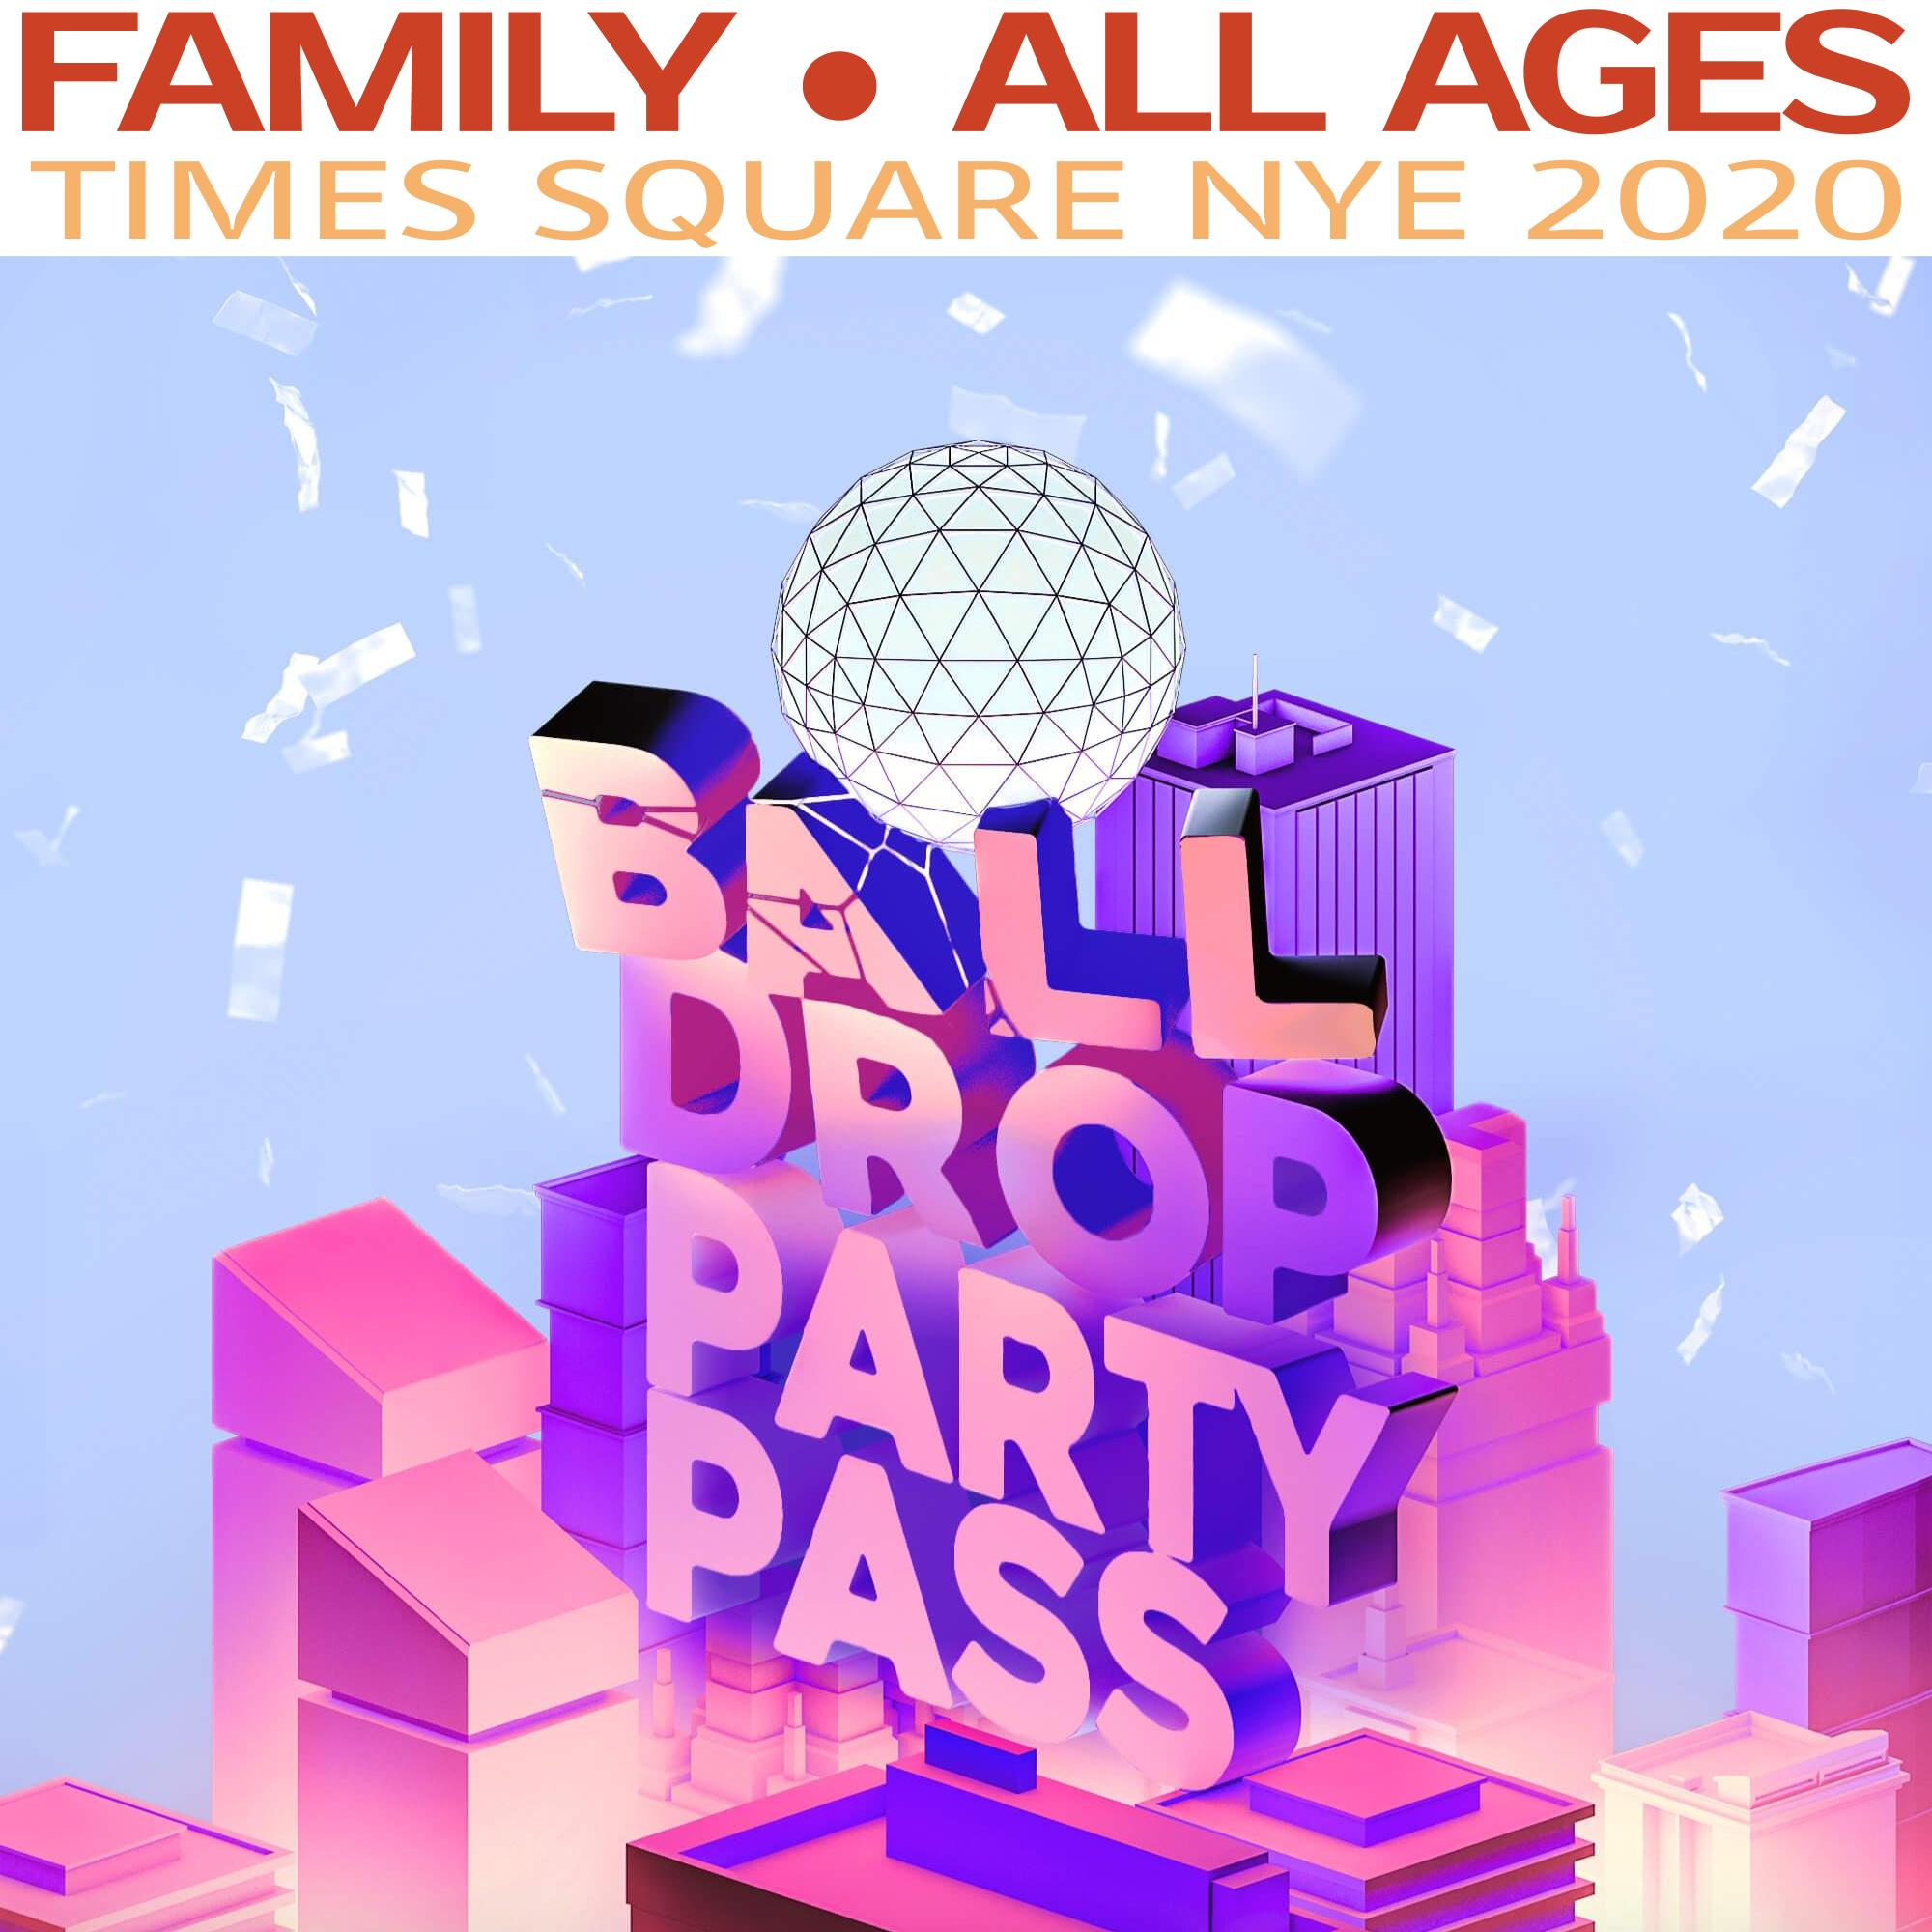 TSQ Family Pass (All Ages) NYE 2020